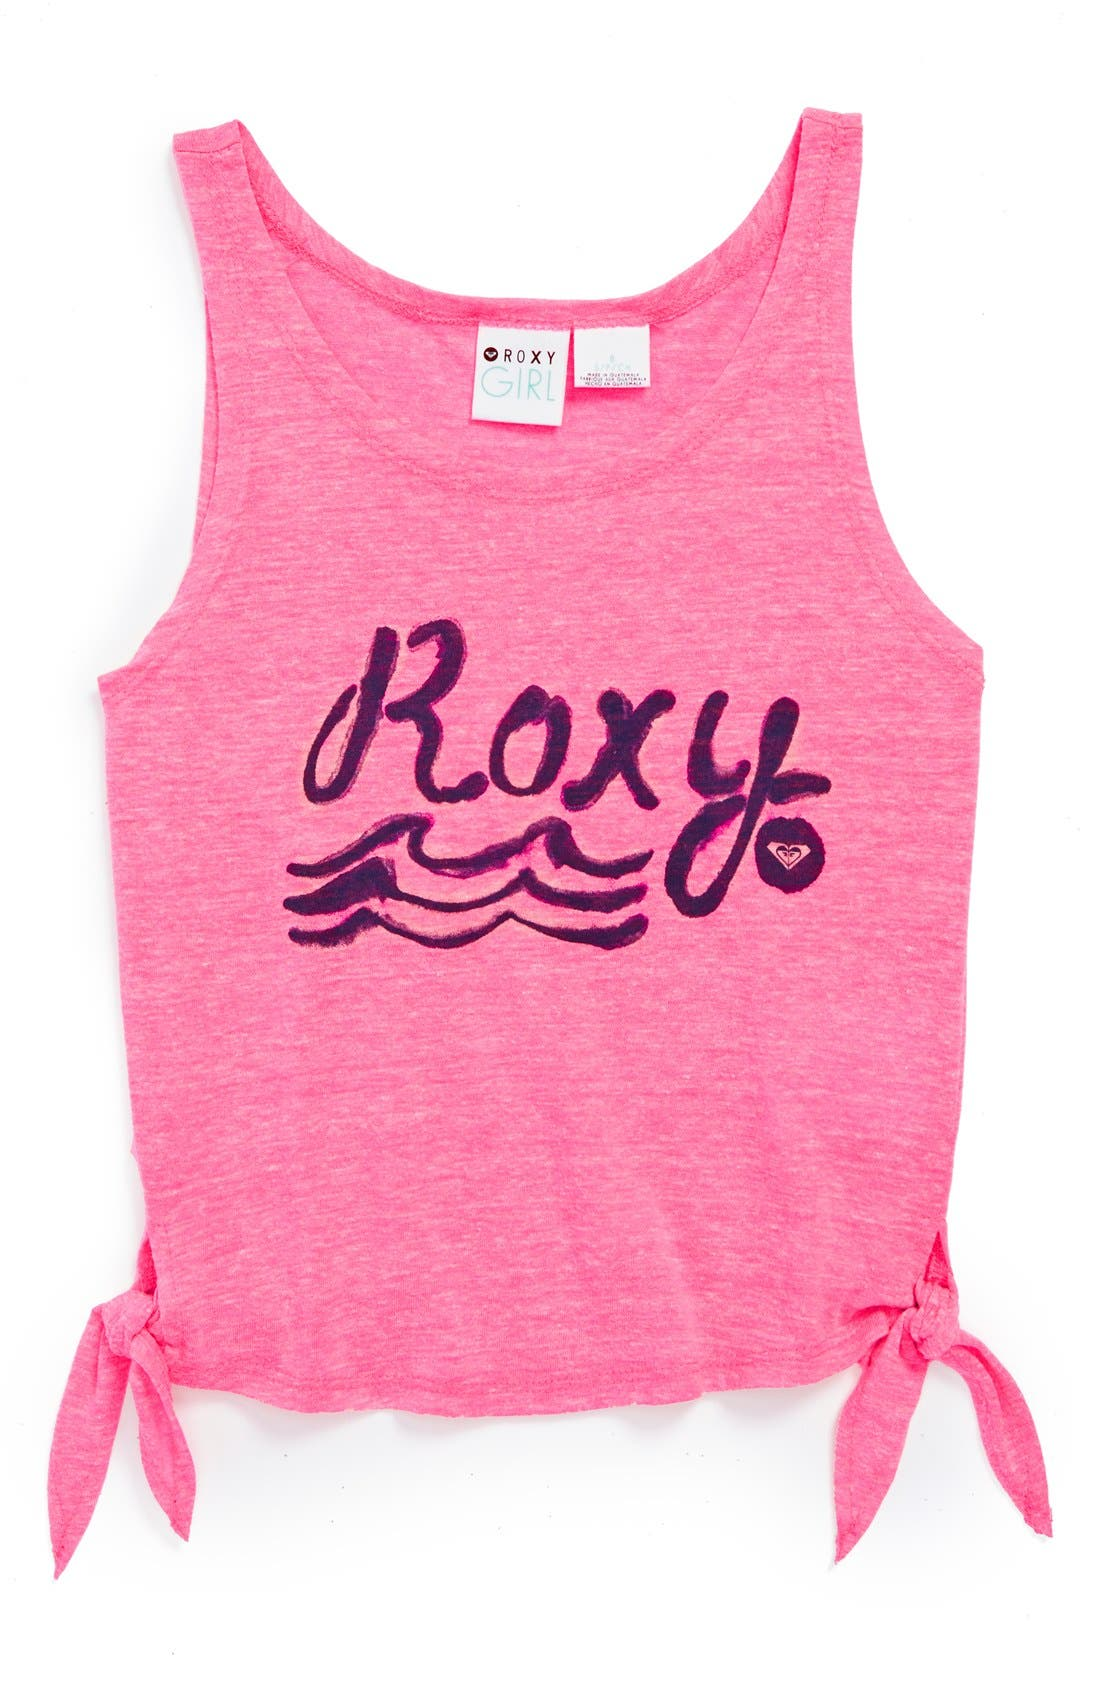 Main Image - Roxy 'From Above' Sleeveless Side Tie Tank Top (Big Girls)(Online Only)